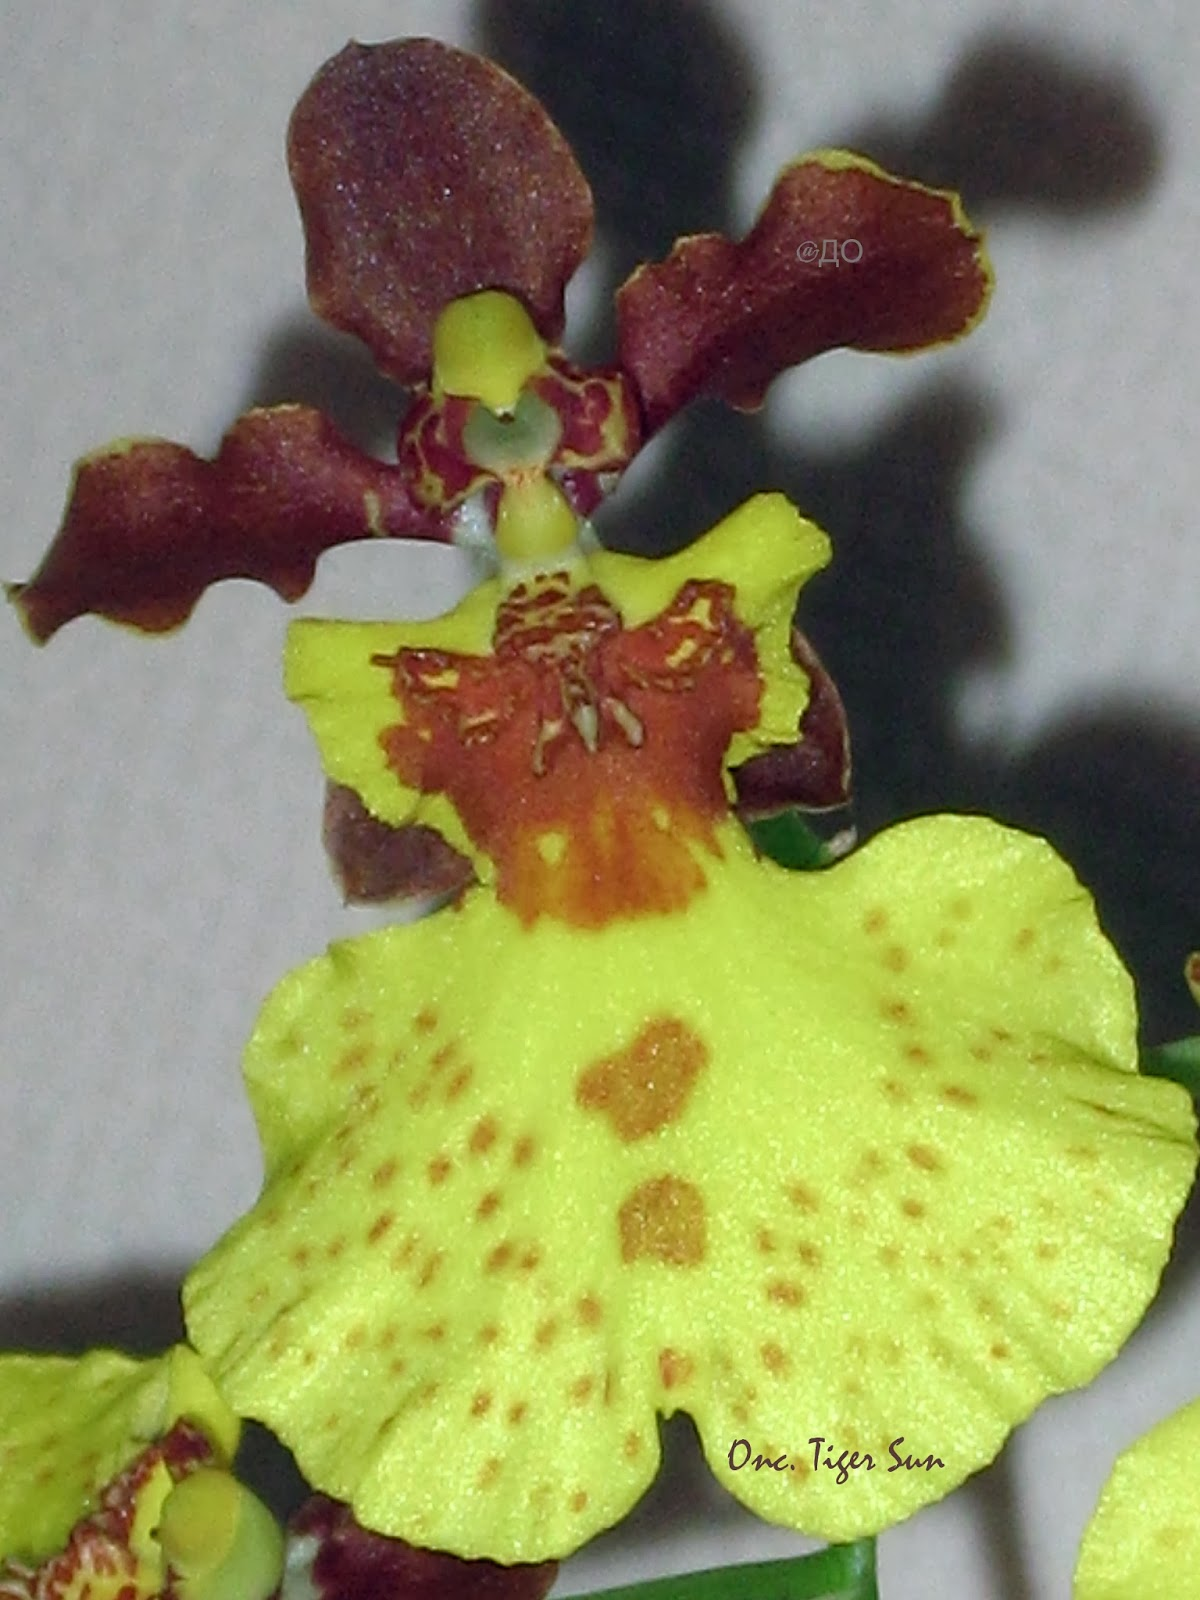 Oncidium Tiger Sun - Цветок